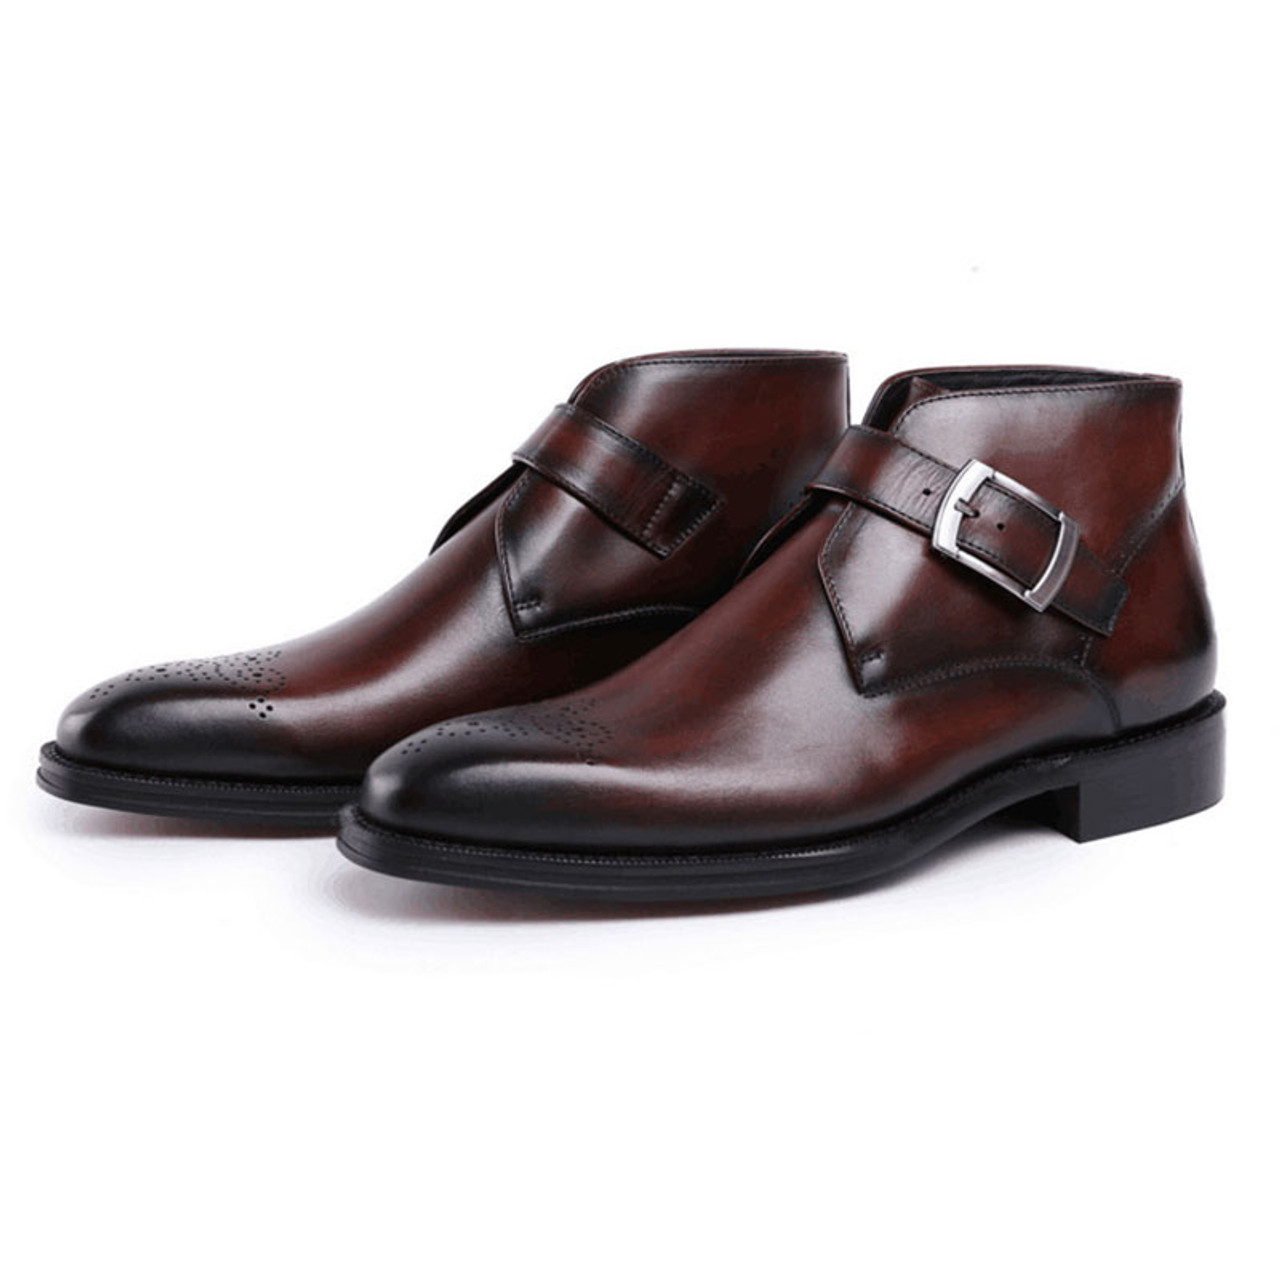 mens fashion leather dress ankle boots for jeans grimentin